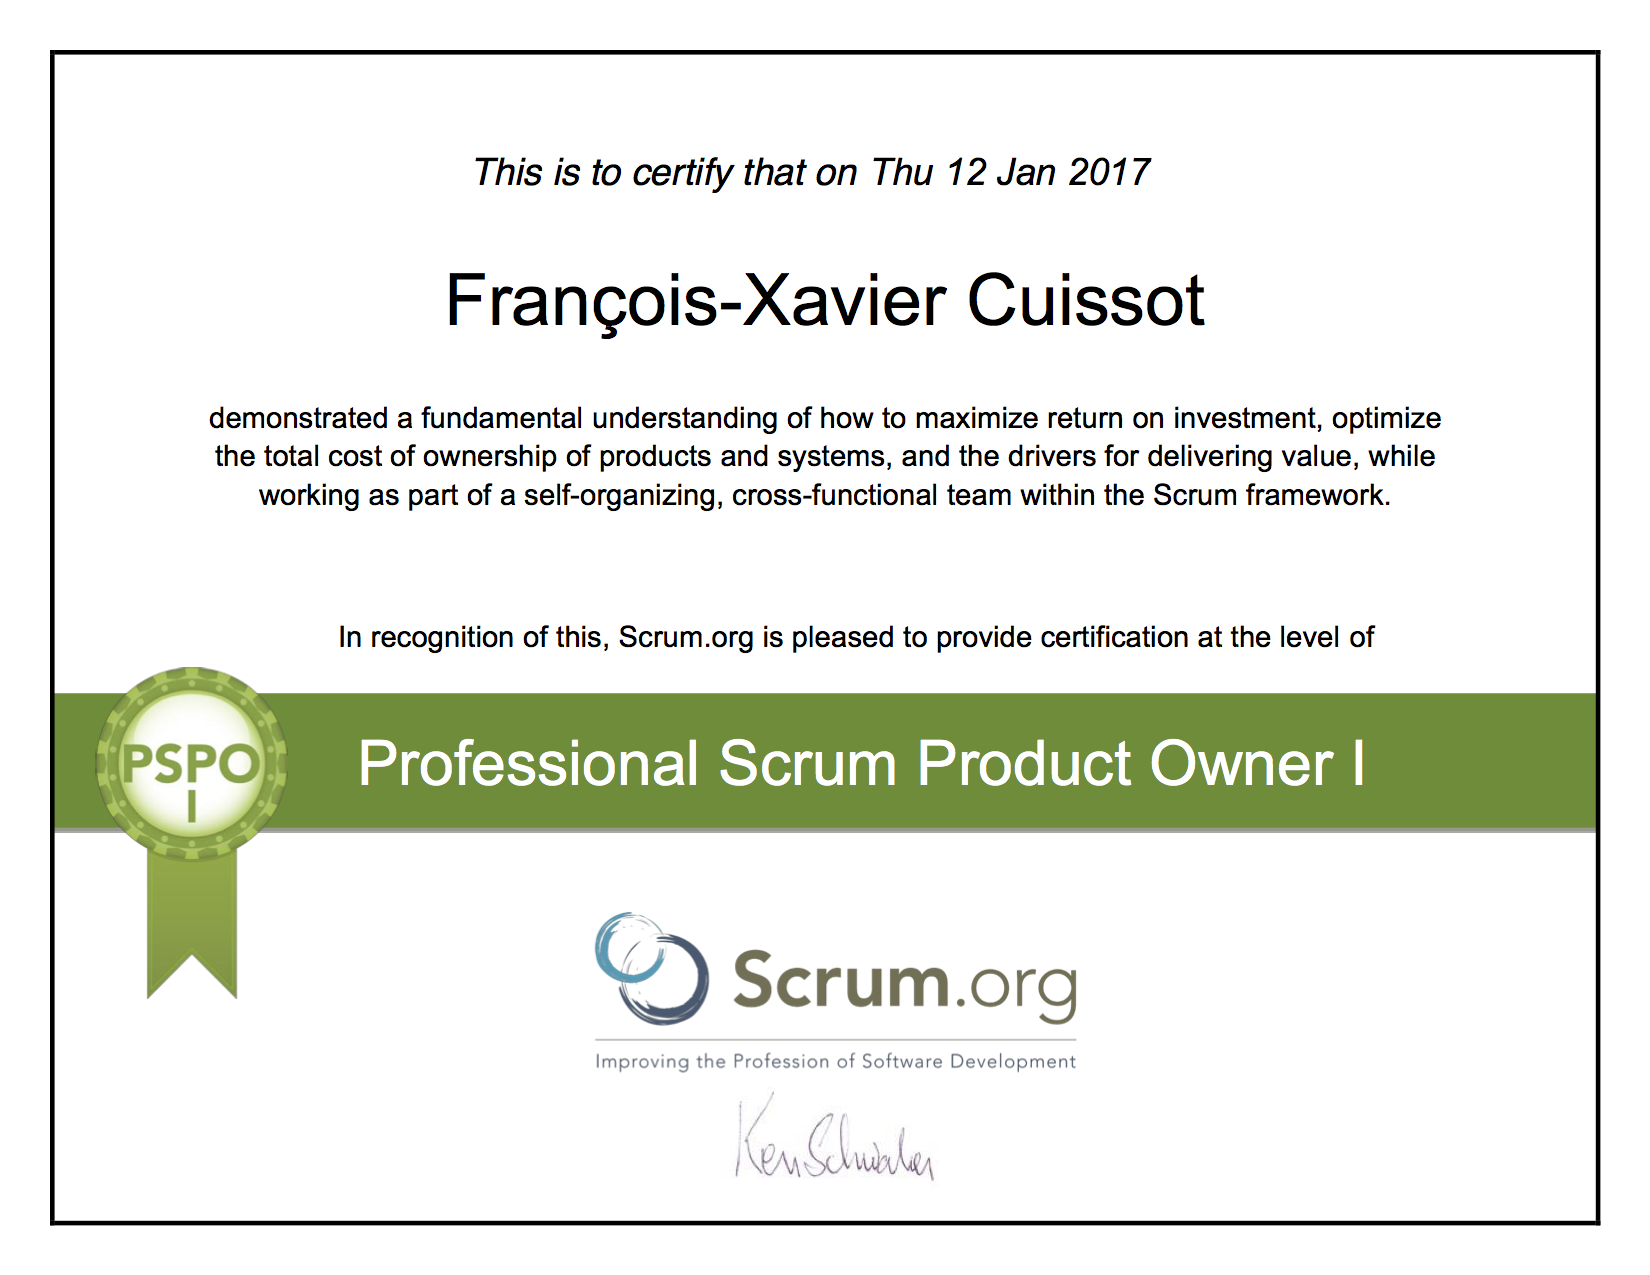 Scrum Certifications Professional Scrum Product Owner I Francois-Xavier Cuissot